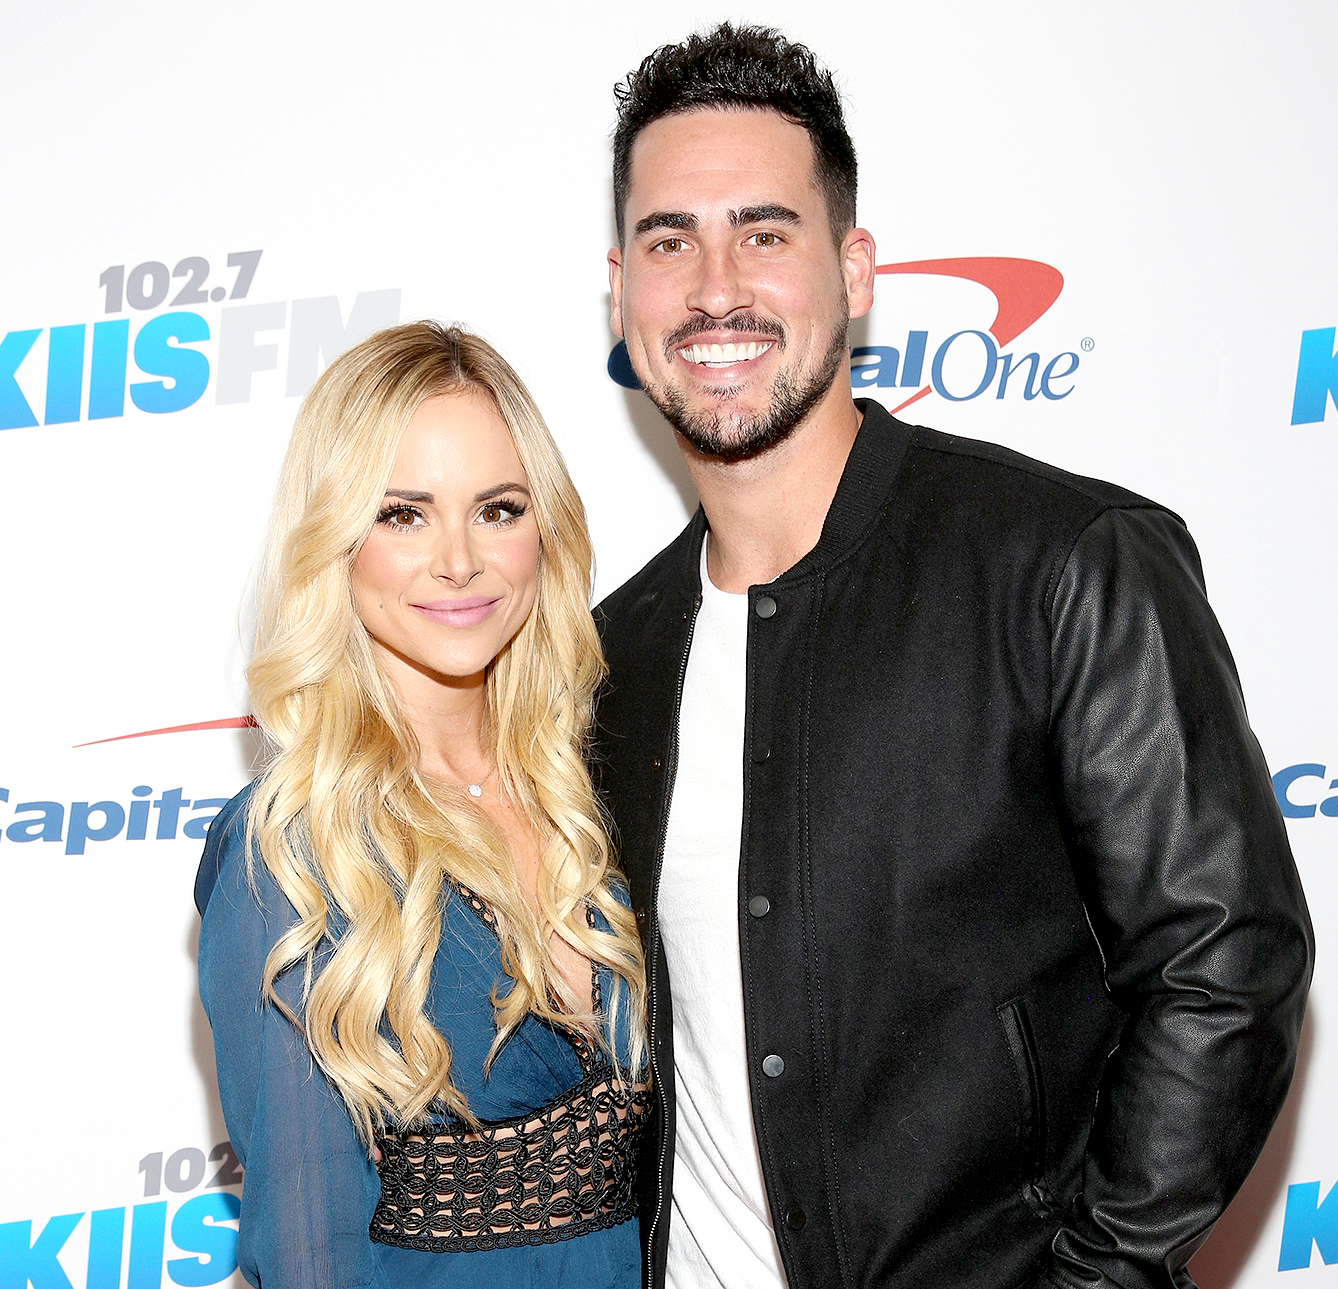 Amanda Stanton and Josh Murray attend 102.7 KIIS FM's Jingle Ball 2016 presented by Capital One at Staples Center on December 2, 2016 in Los Angeles, California.